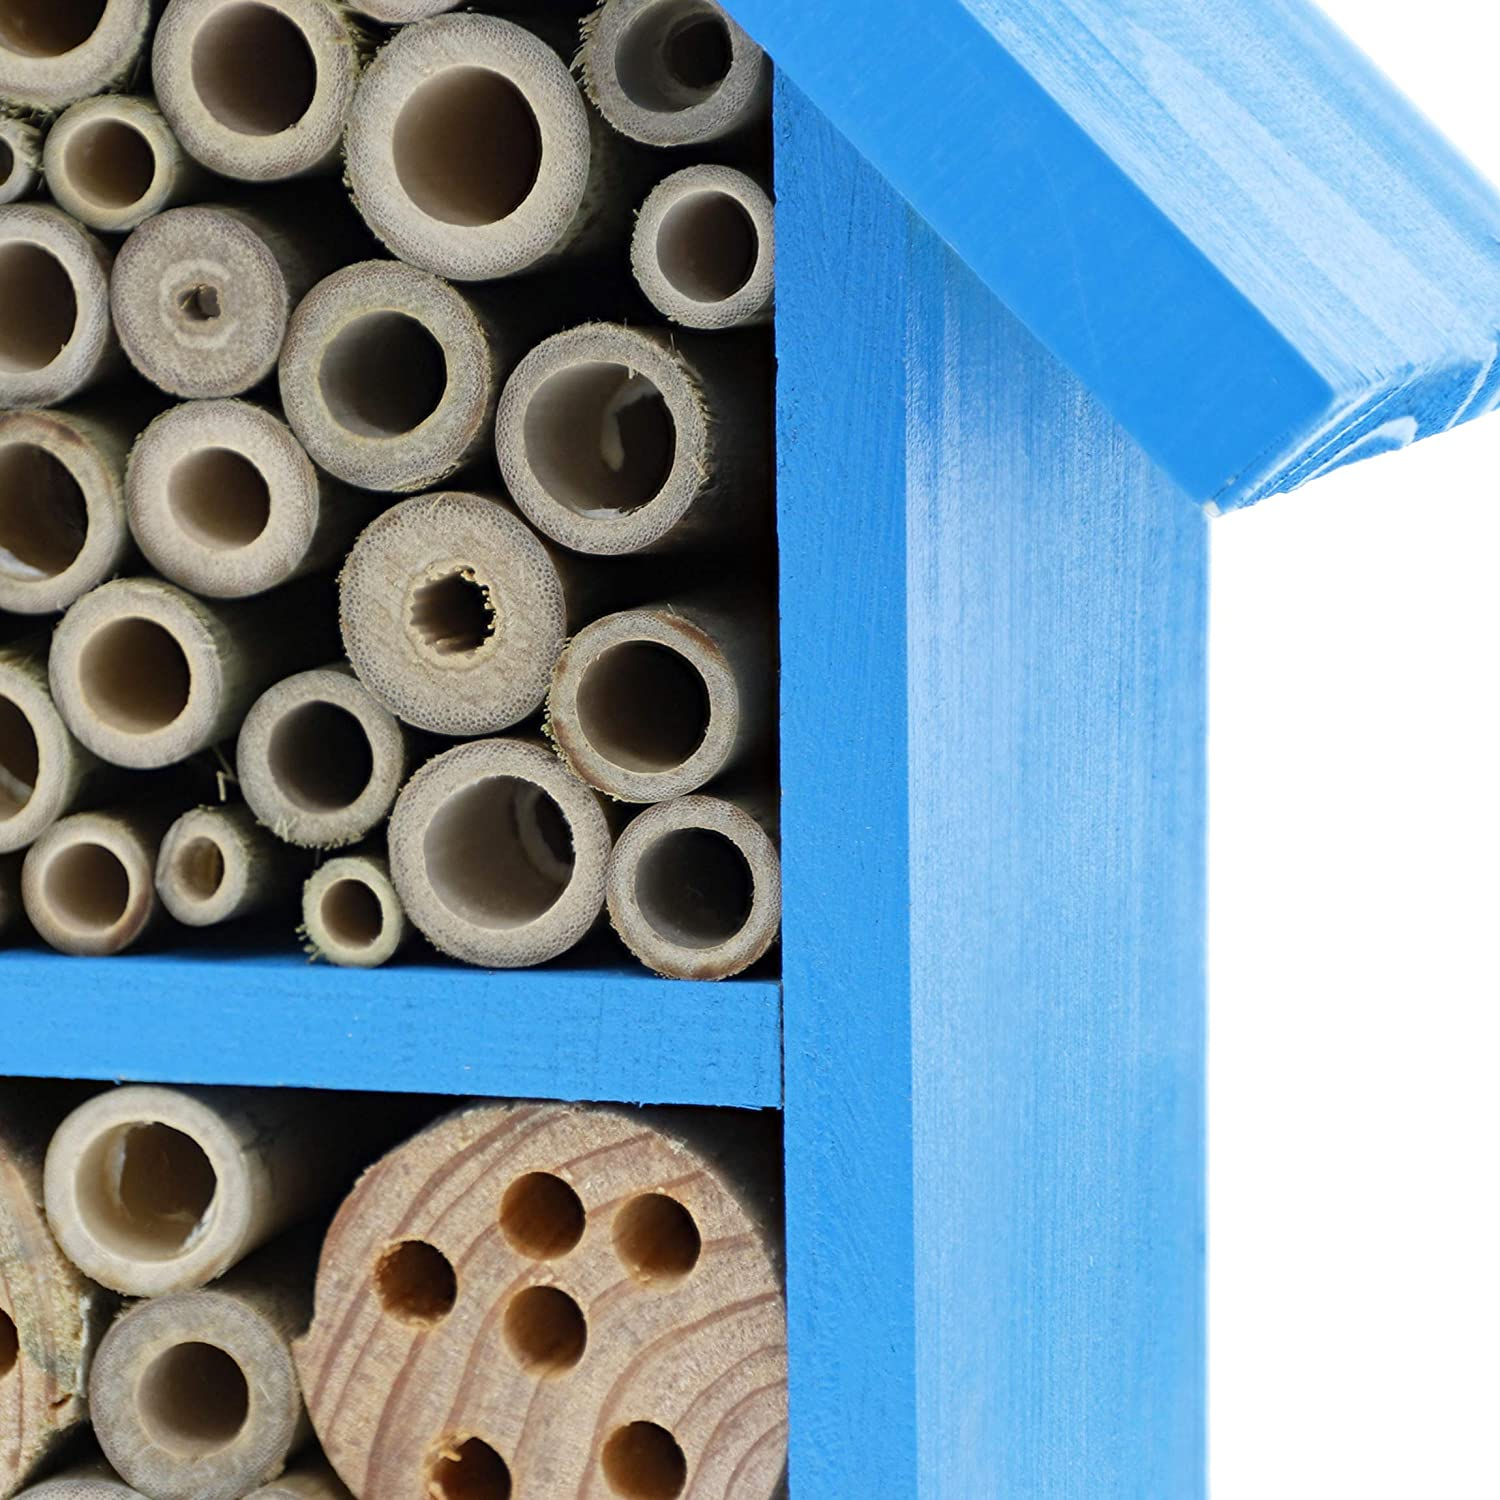 7.4 x 10.15 x 4.65 Inches Blue Mason House Hive Bee Houses for The Garden